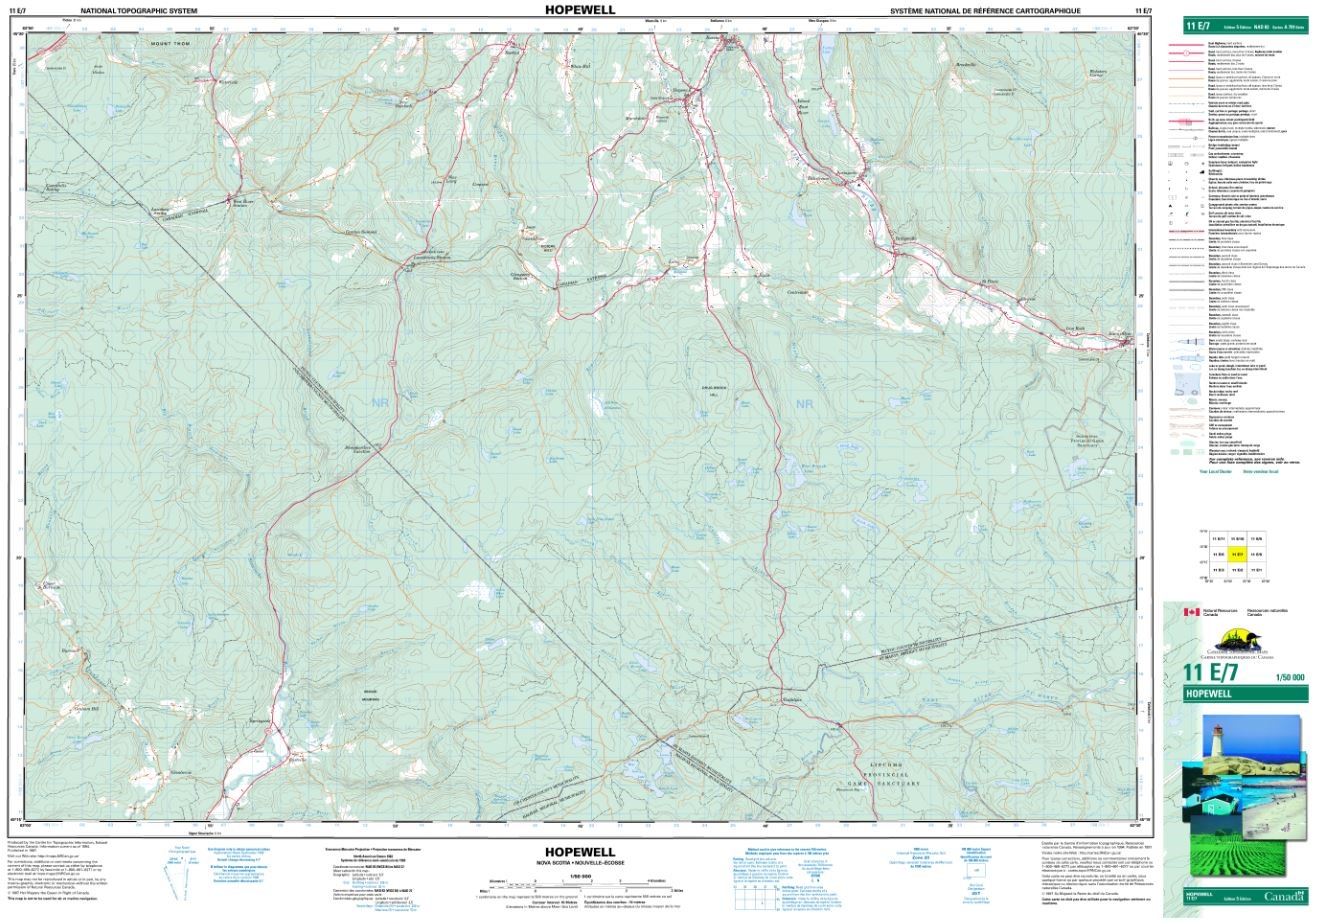 11E/07 Hopewell Topographic Map Nova Scotia